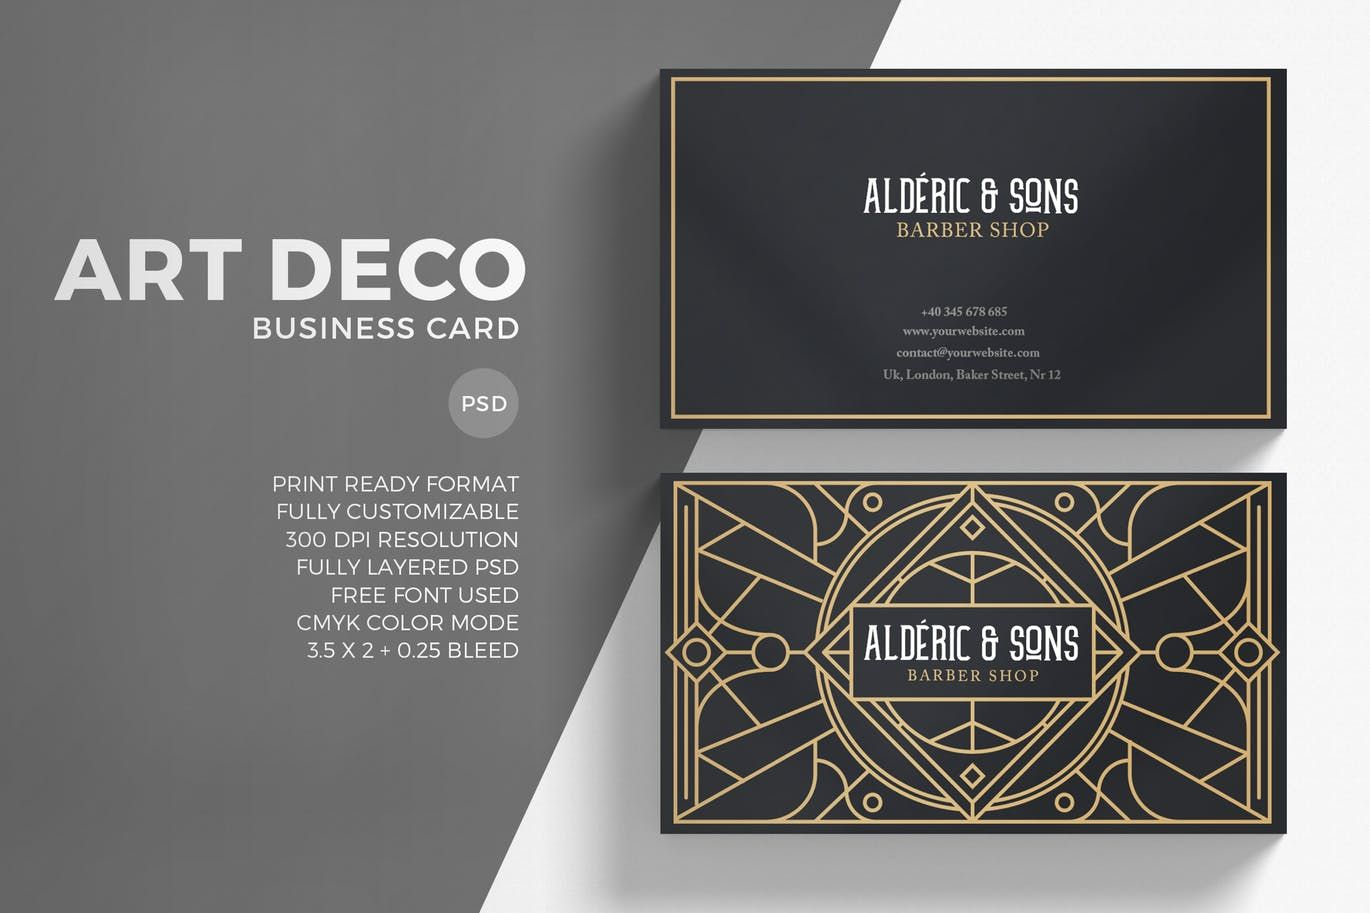 Art Deco Business Card By Eightonesixstudios On Envato Elements Art Deco Business Card Business Card Graphic Art Deco